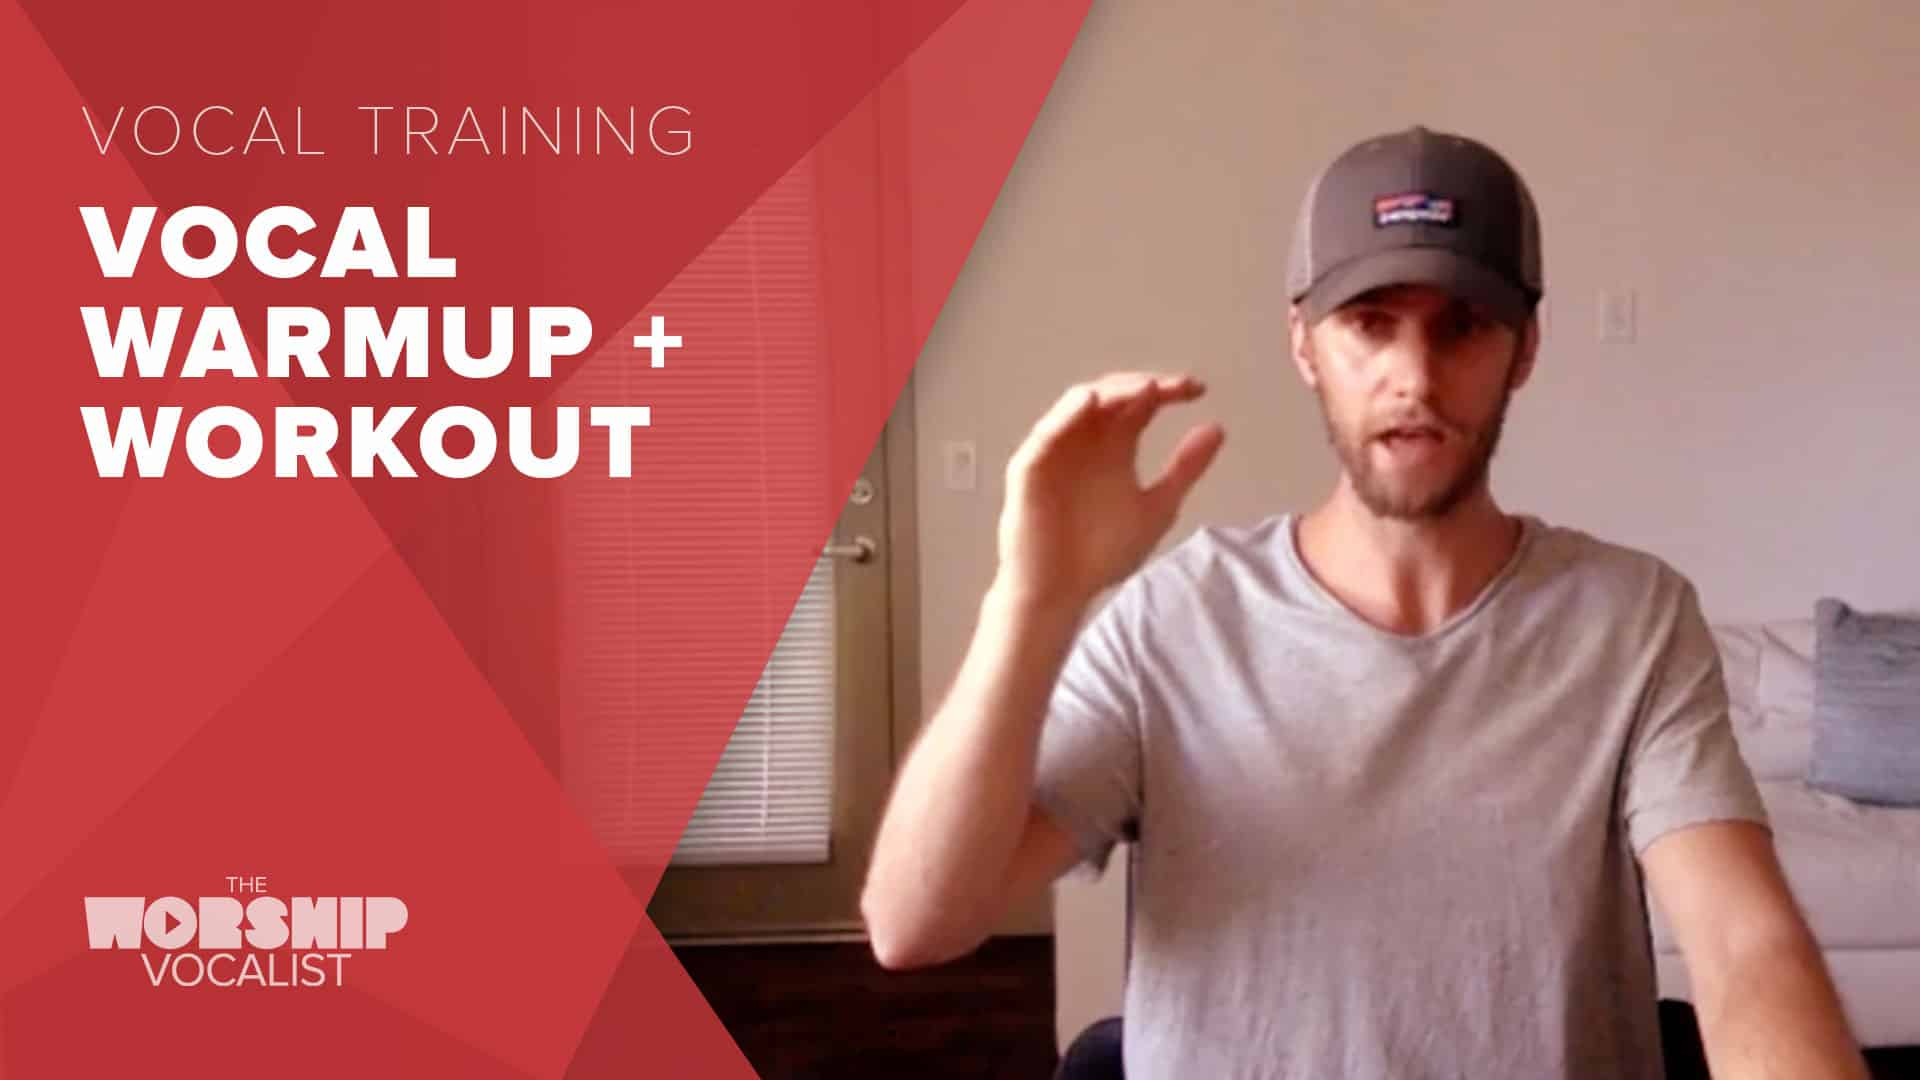 Vocal Warmup + Workout